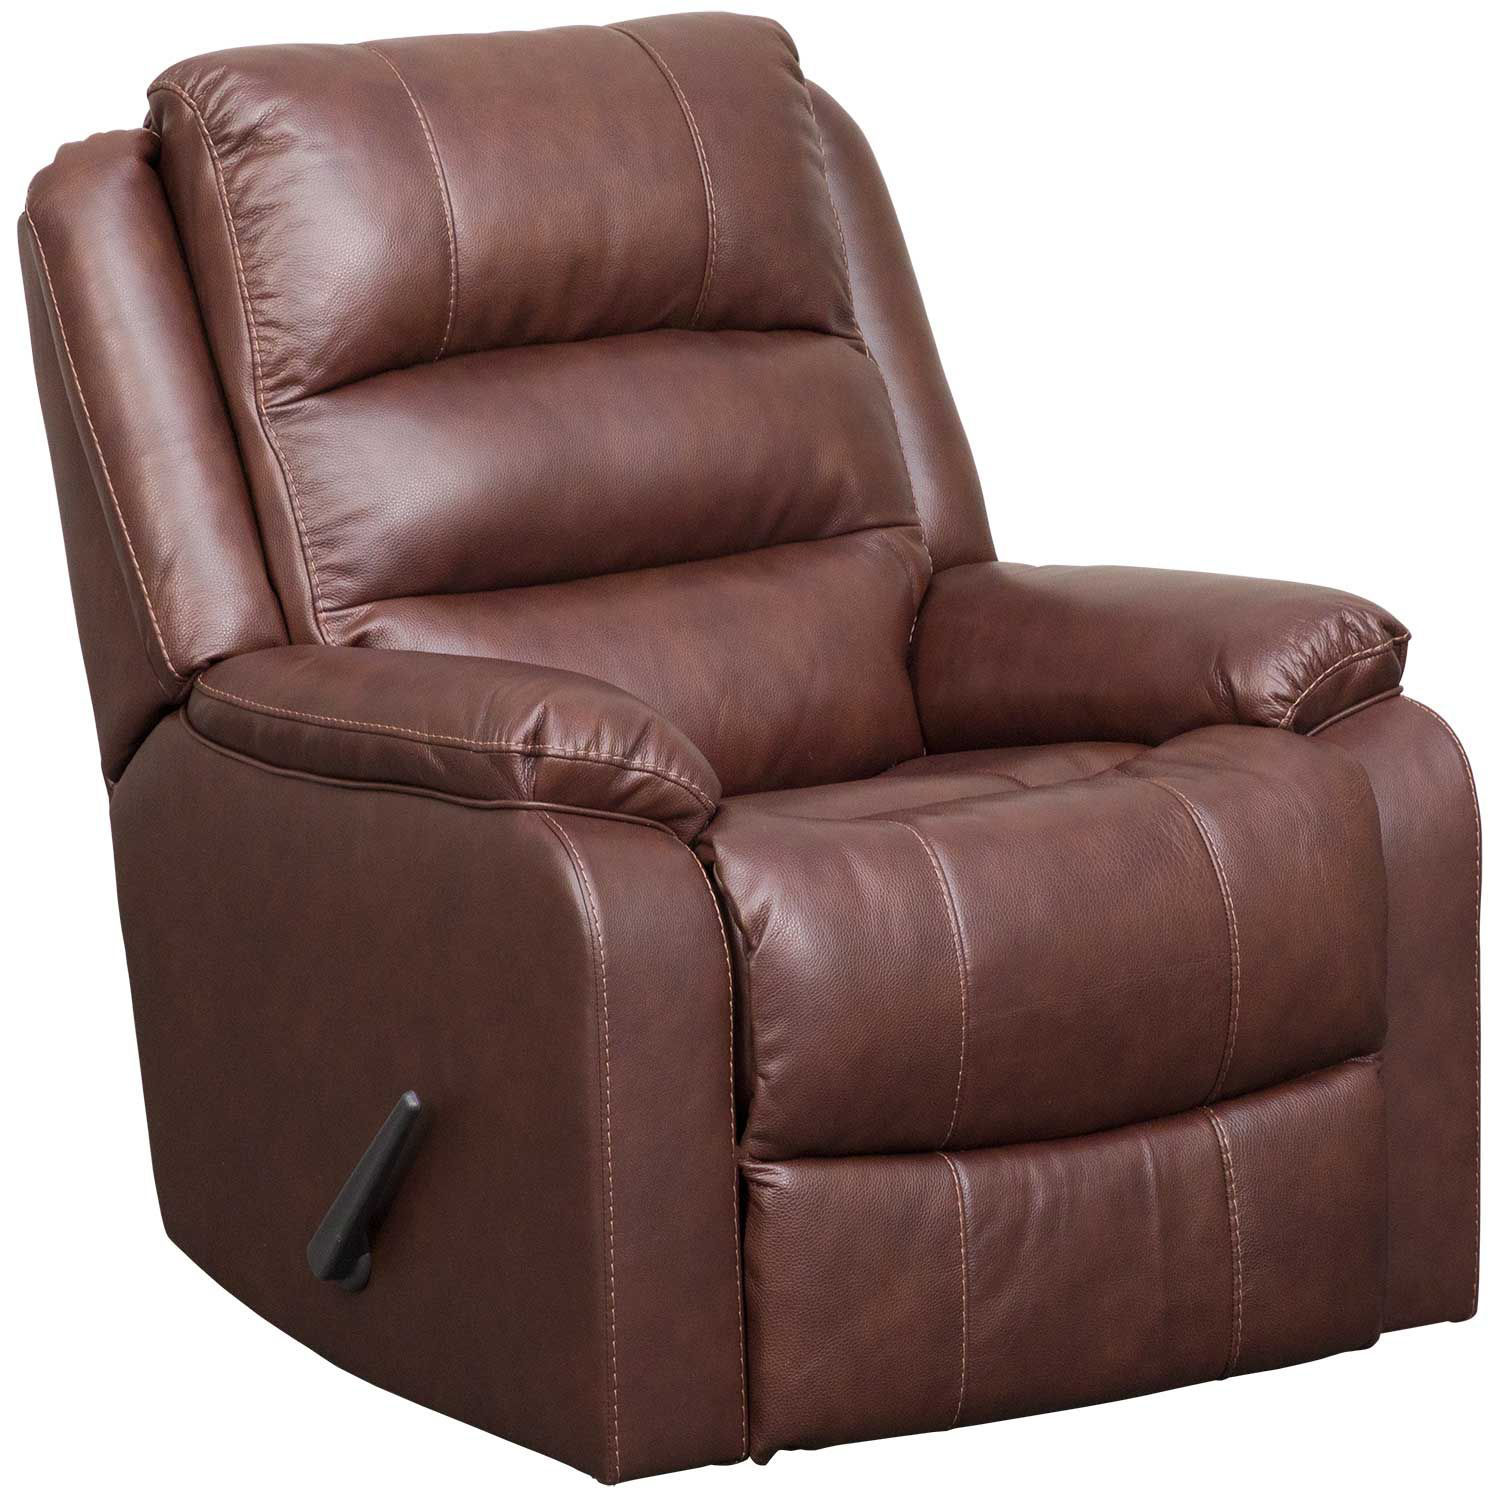 Picture of Wylesburg Leather Rocker Recliner